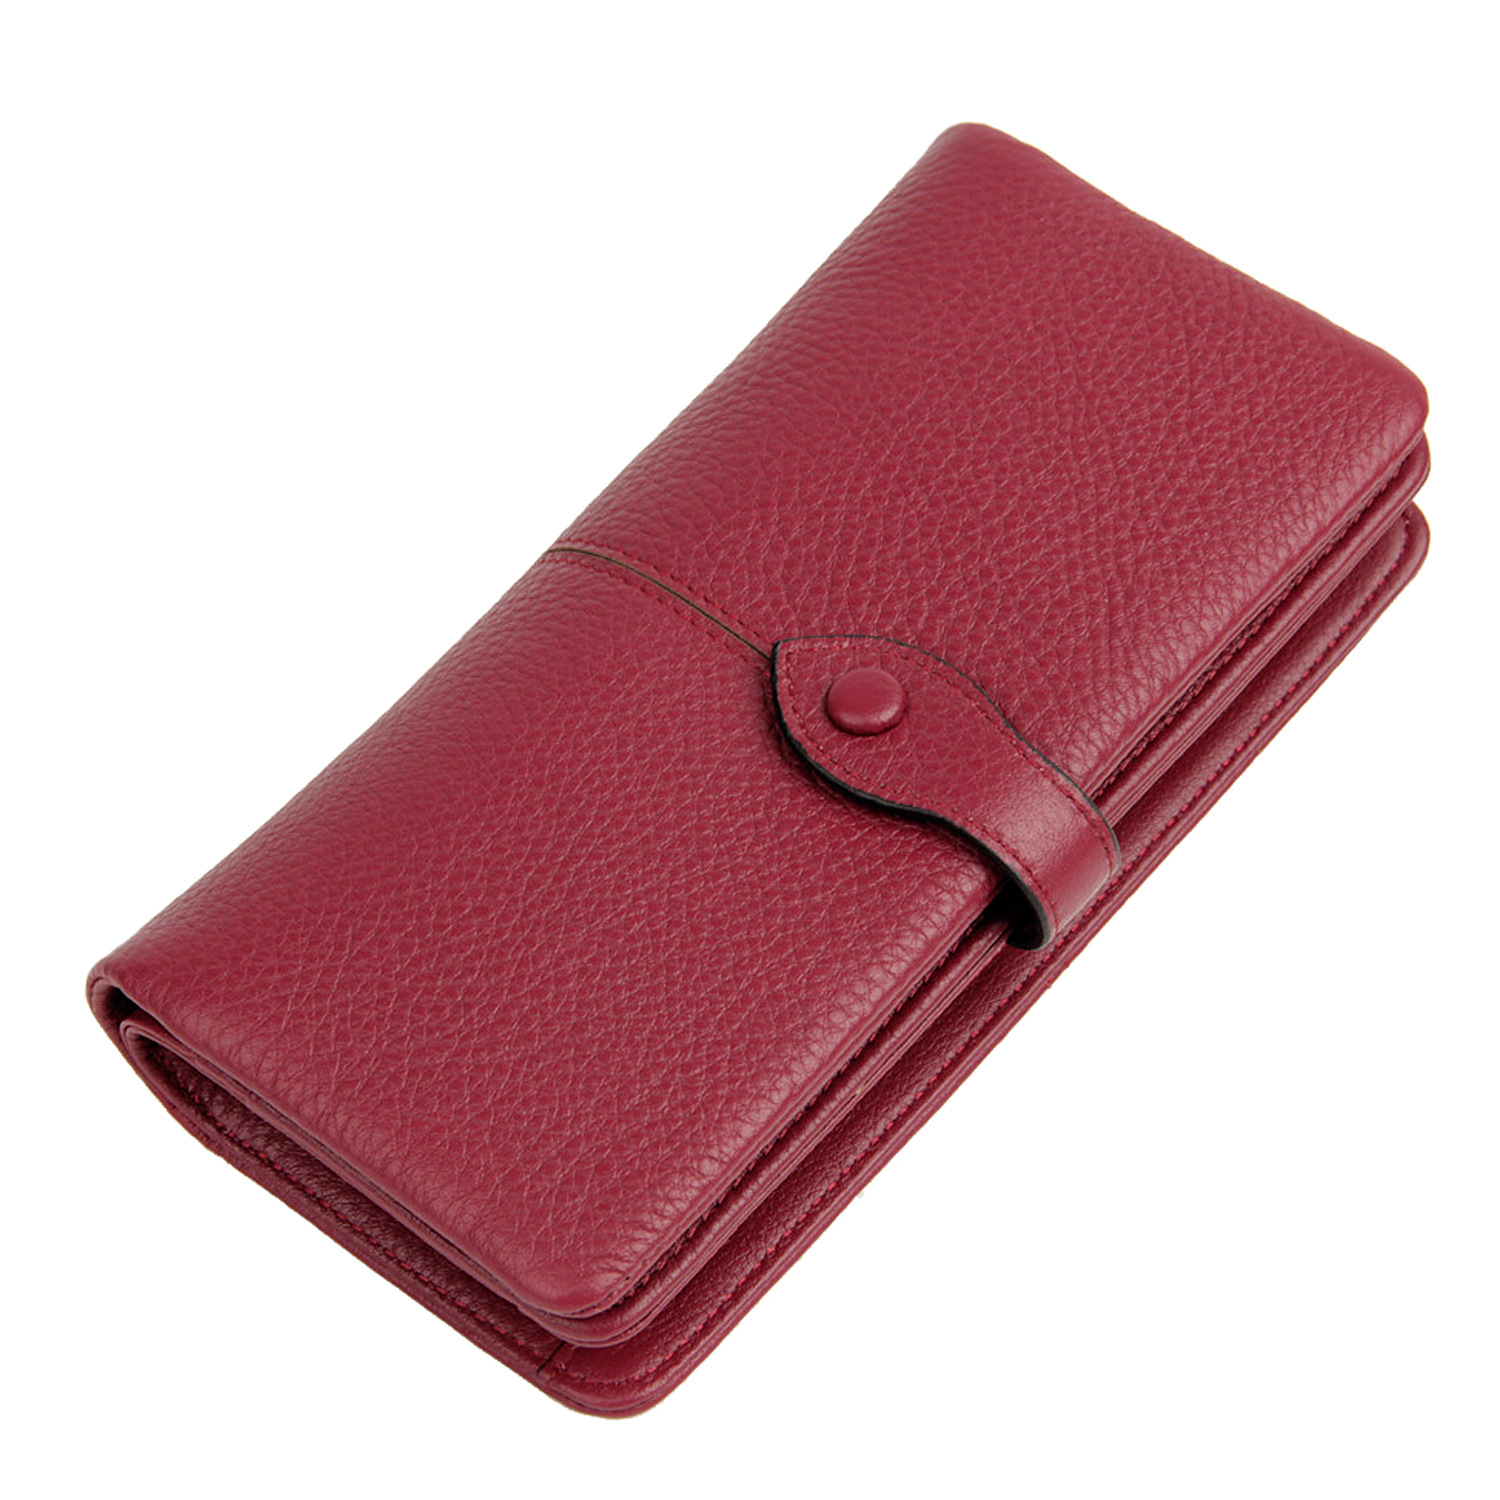 Women Genuine Leather Purse Long Korean Cowhide Wallet Ladies Pull Large Capacity Multifunctional Card Holder Clutch Phone Bags contact s genuine leather women wallet large capacity long purse card holder fashion brand real cowhide clutch money bag wallet